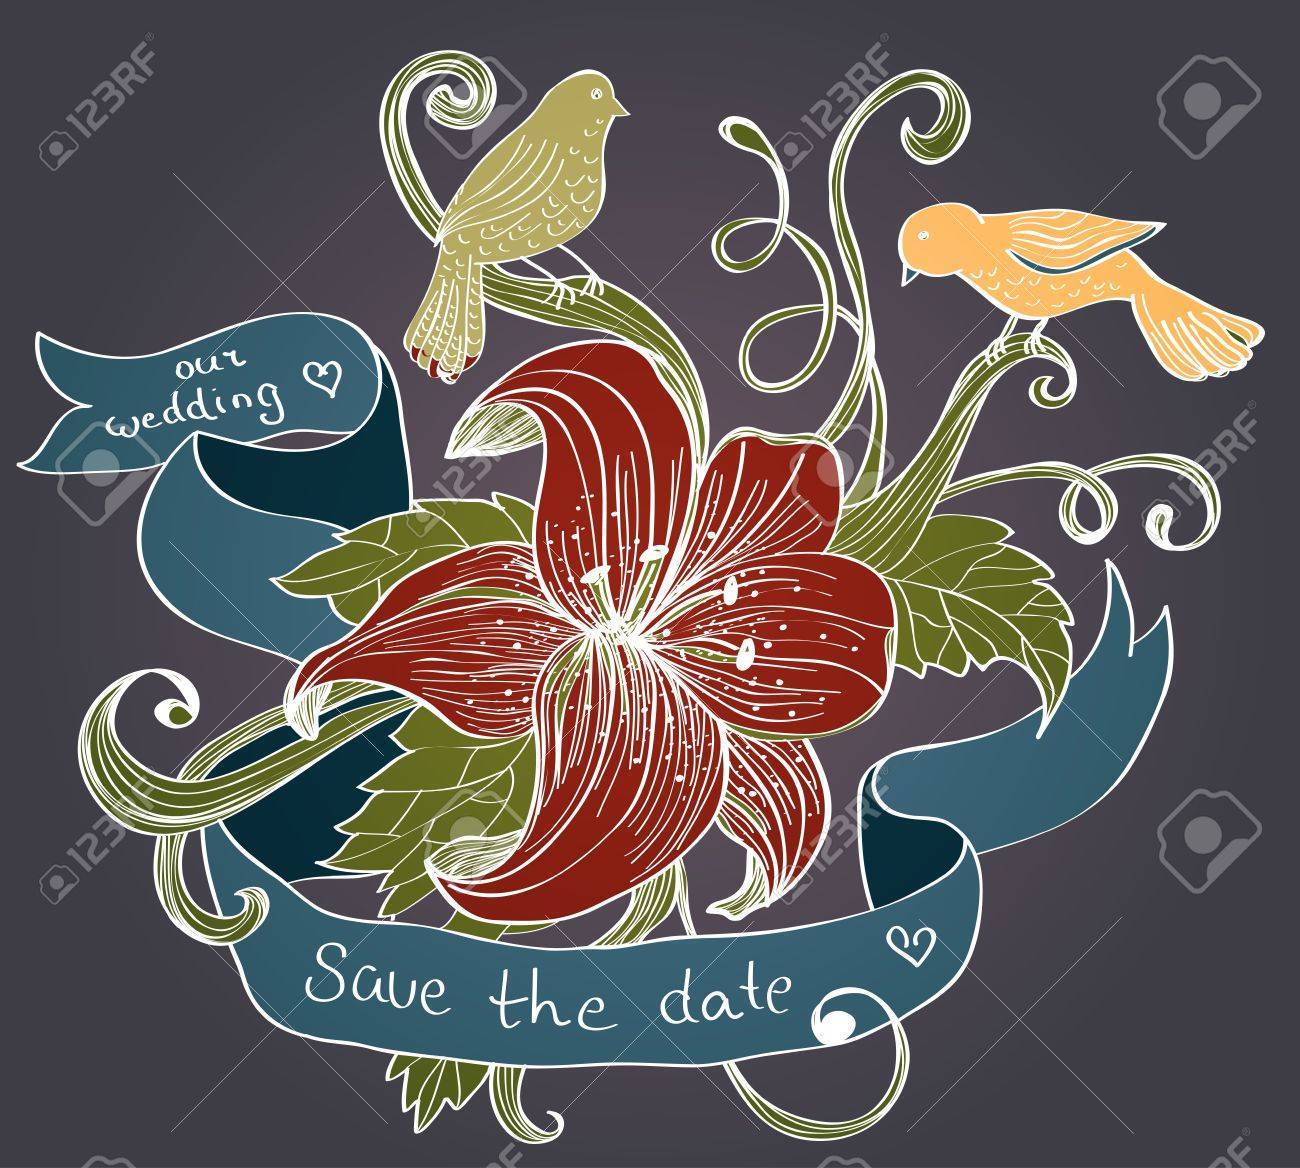 old fashion background with flower, birds and ribbon for design, illustration Stock Vector - 14049861